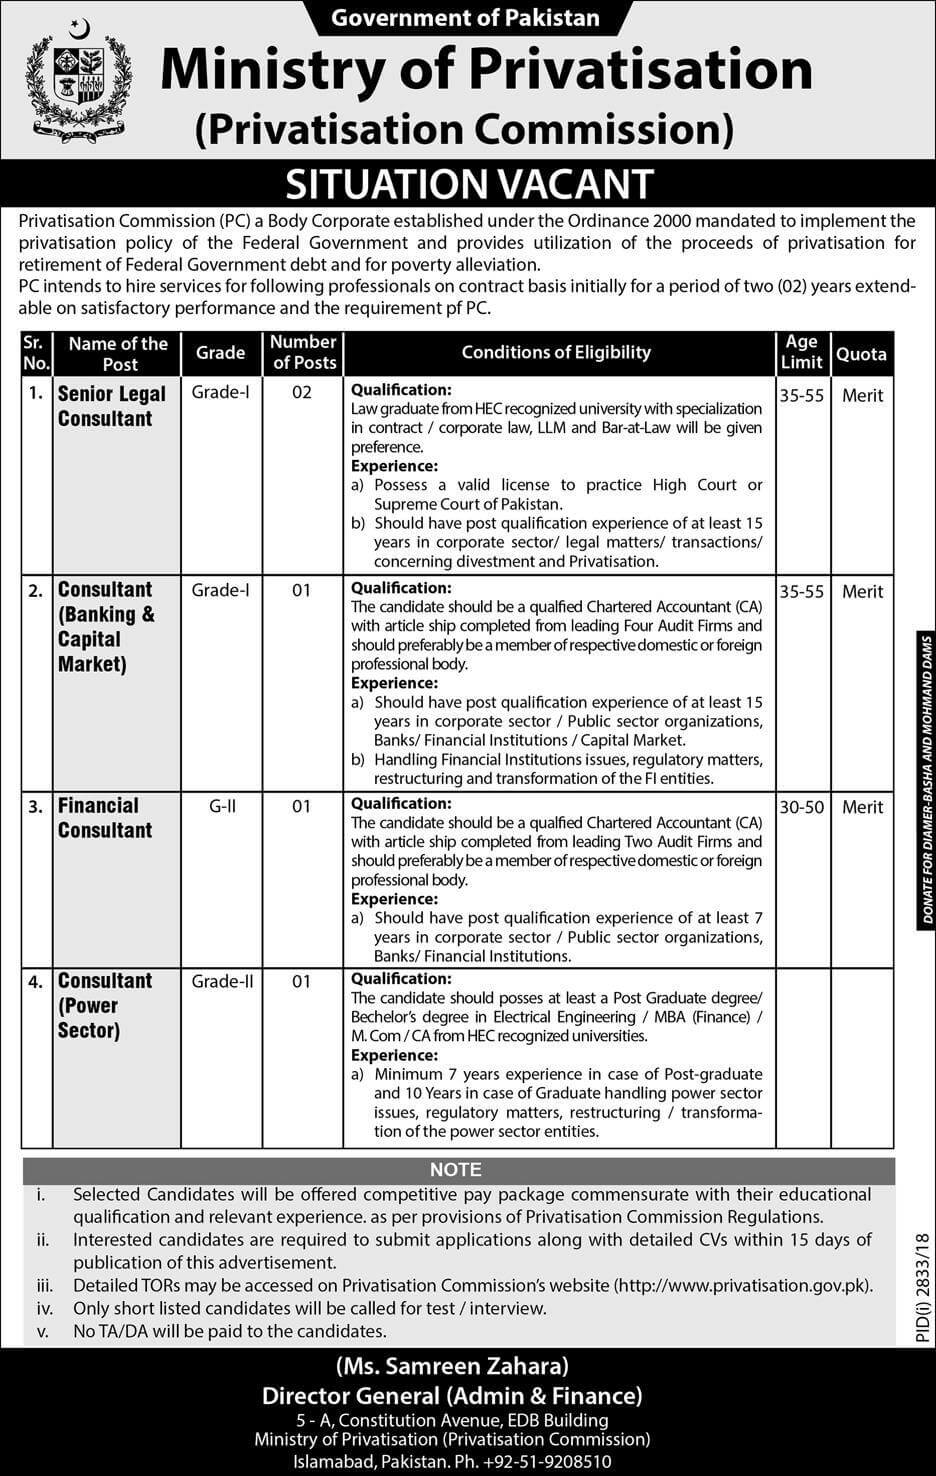 Ministry Of Privatisation Jobs 2019 Government Pakistan  in Islamabad on December, 2018 | Government